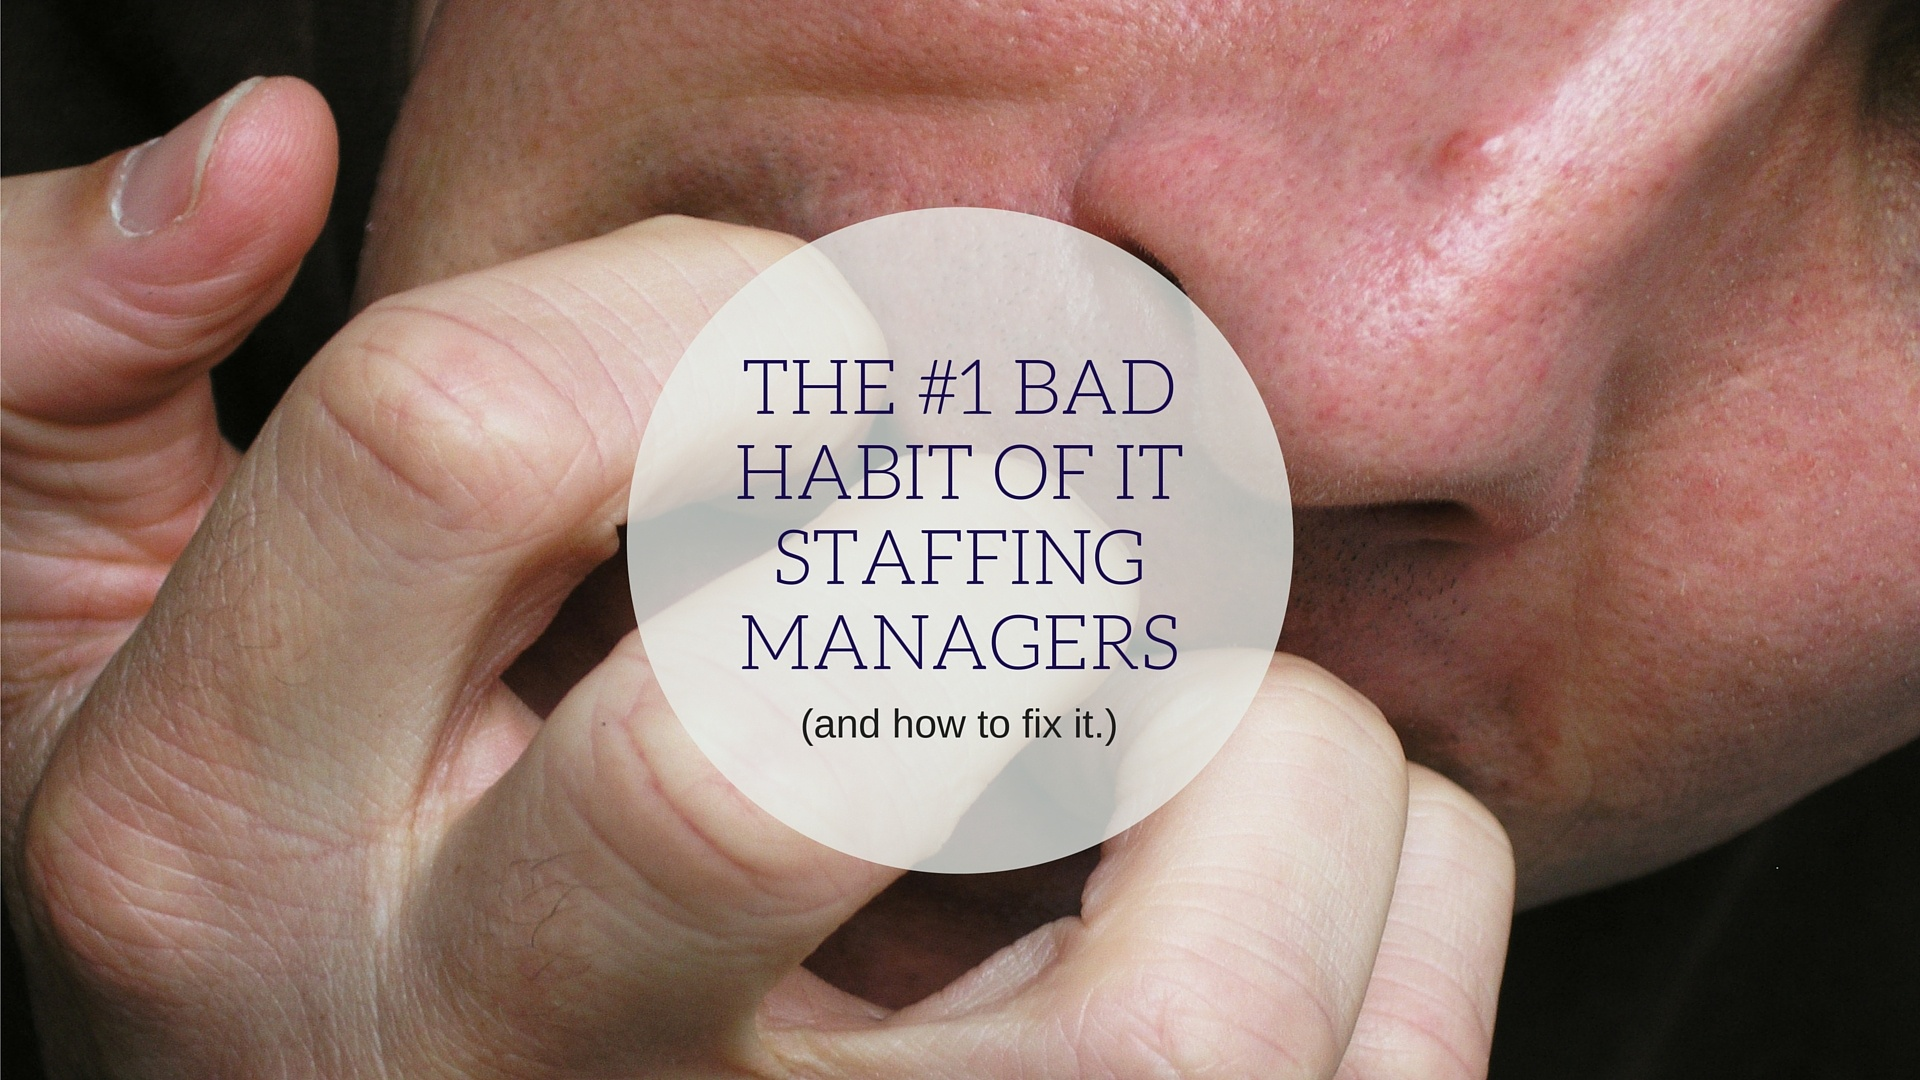 The #1 Bad Habit of IT Staffing Sales Managers (and How to Fix It)